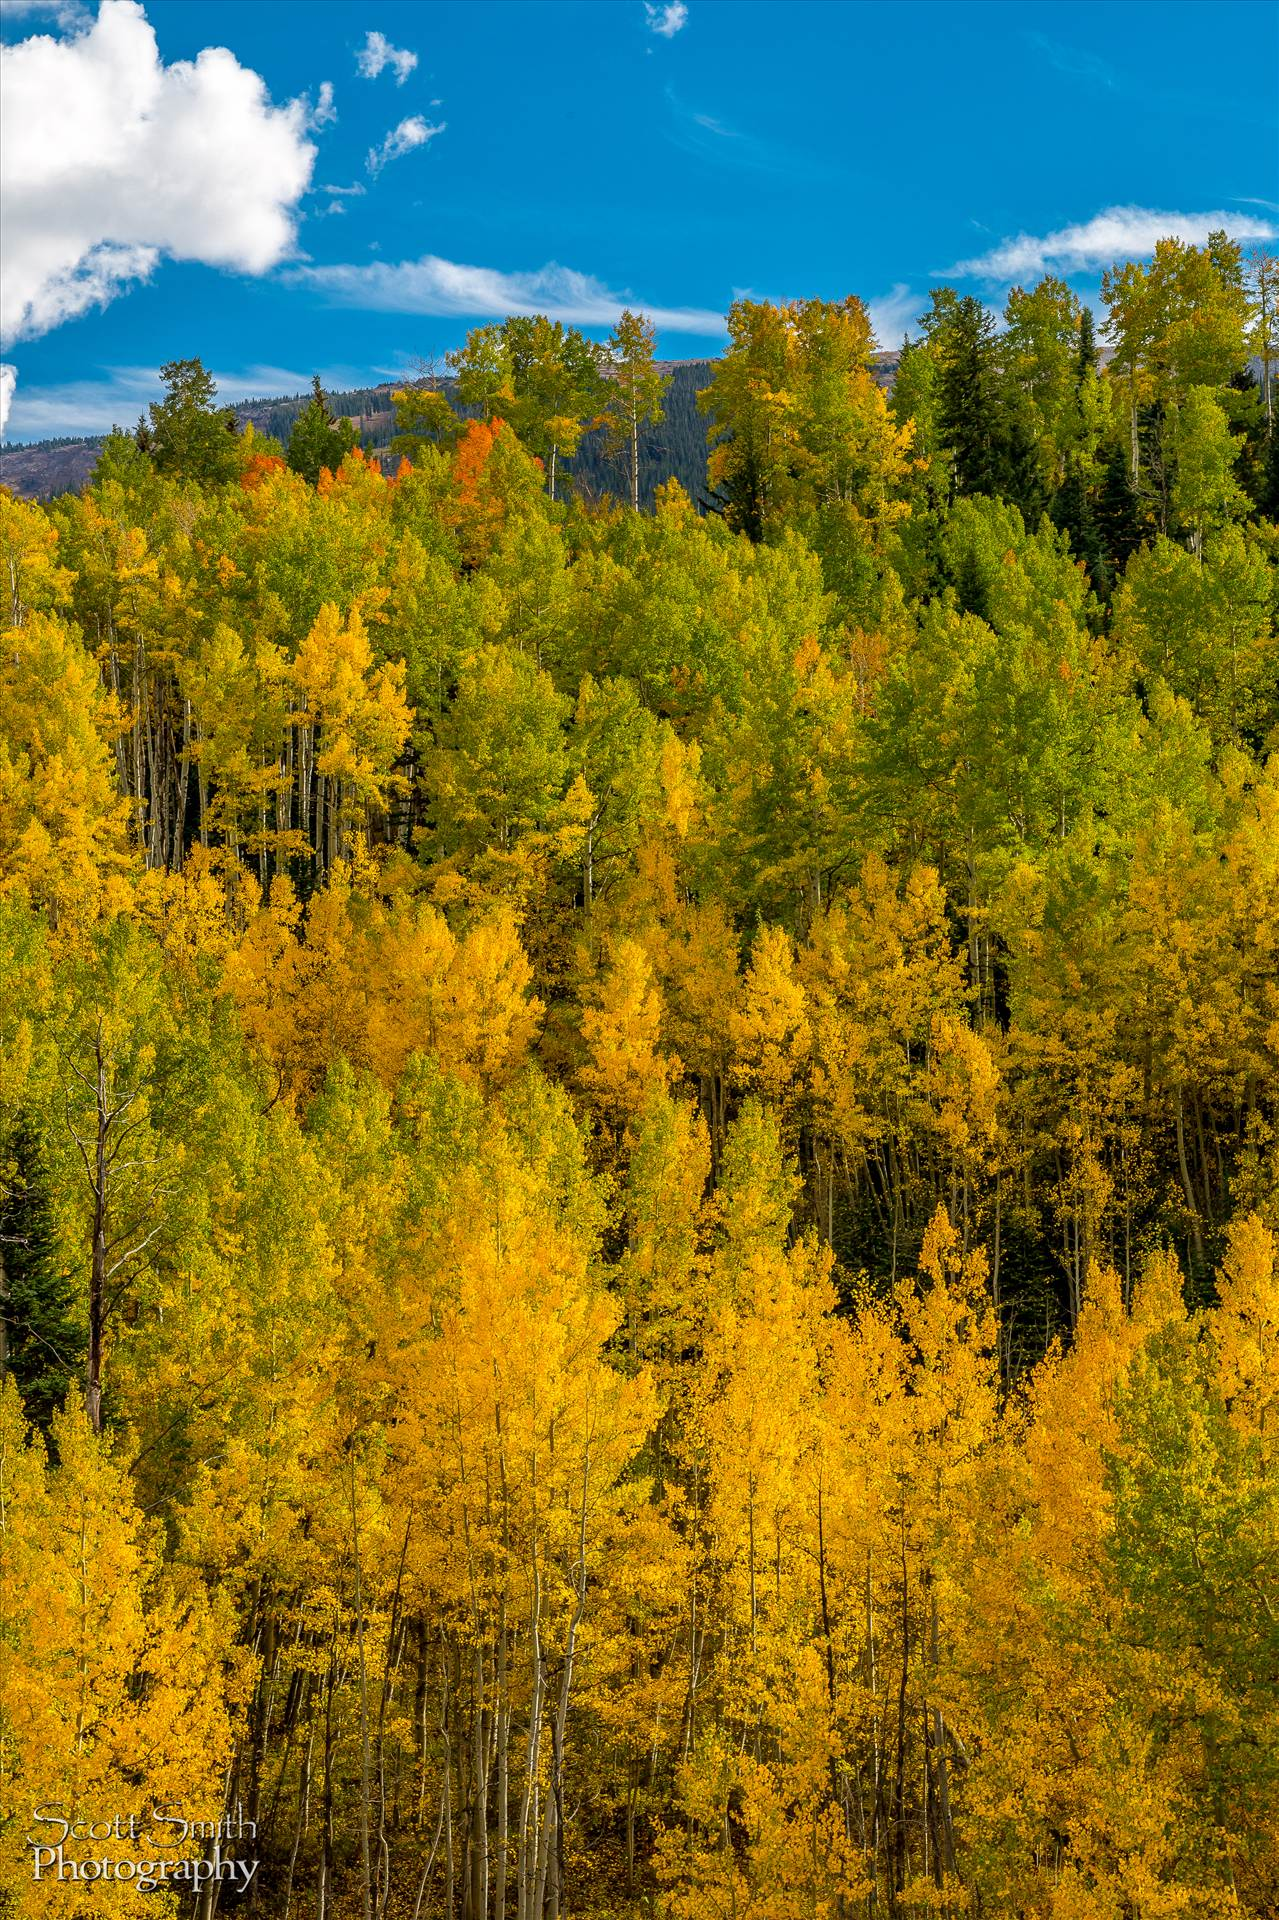 Snowmass Wilderness Area Fall Colors - Fall colors in Colorado, just outside of Snowmass Village by Scott Smith Photos